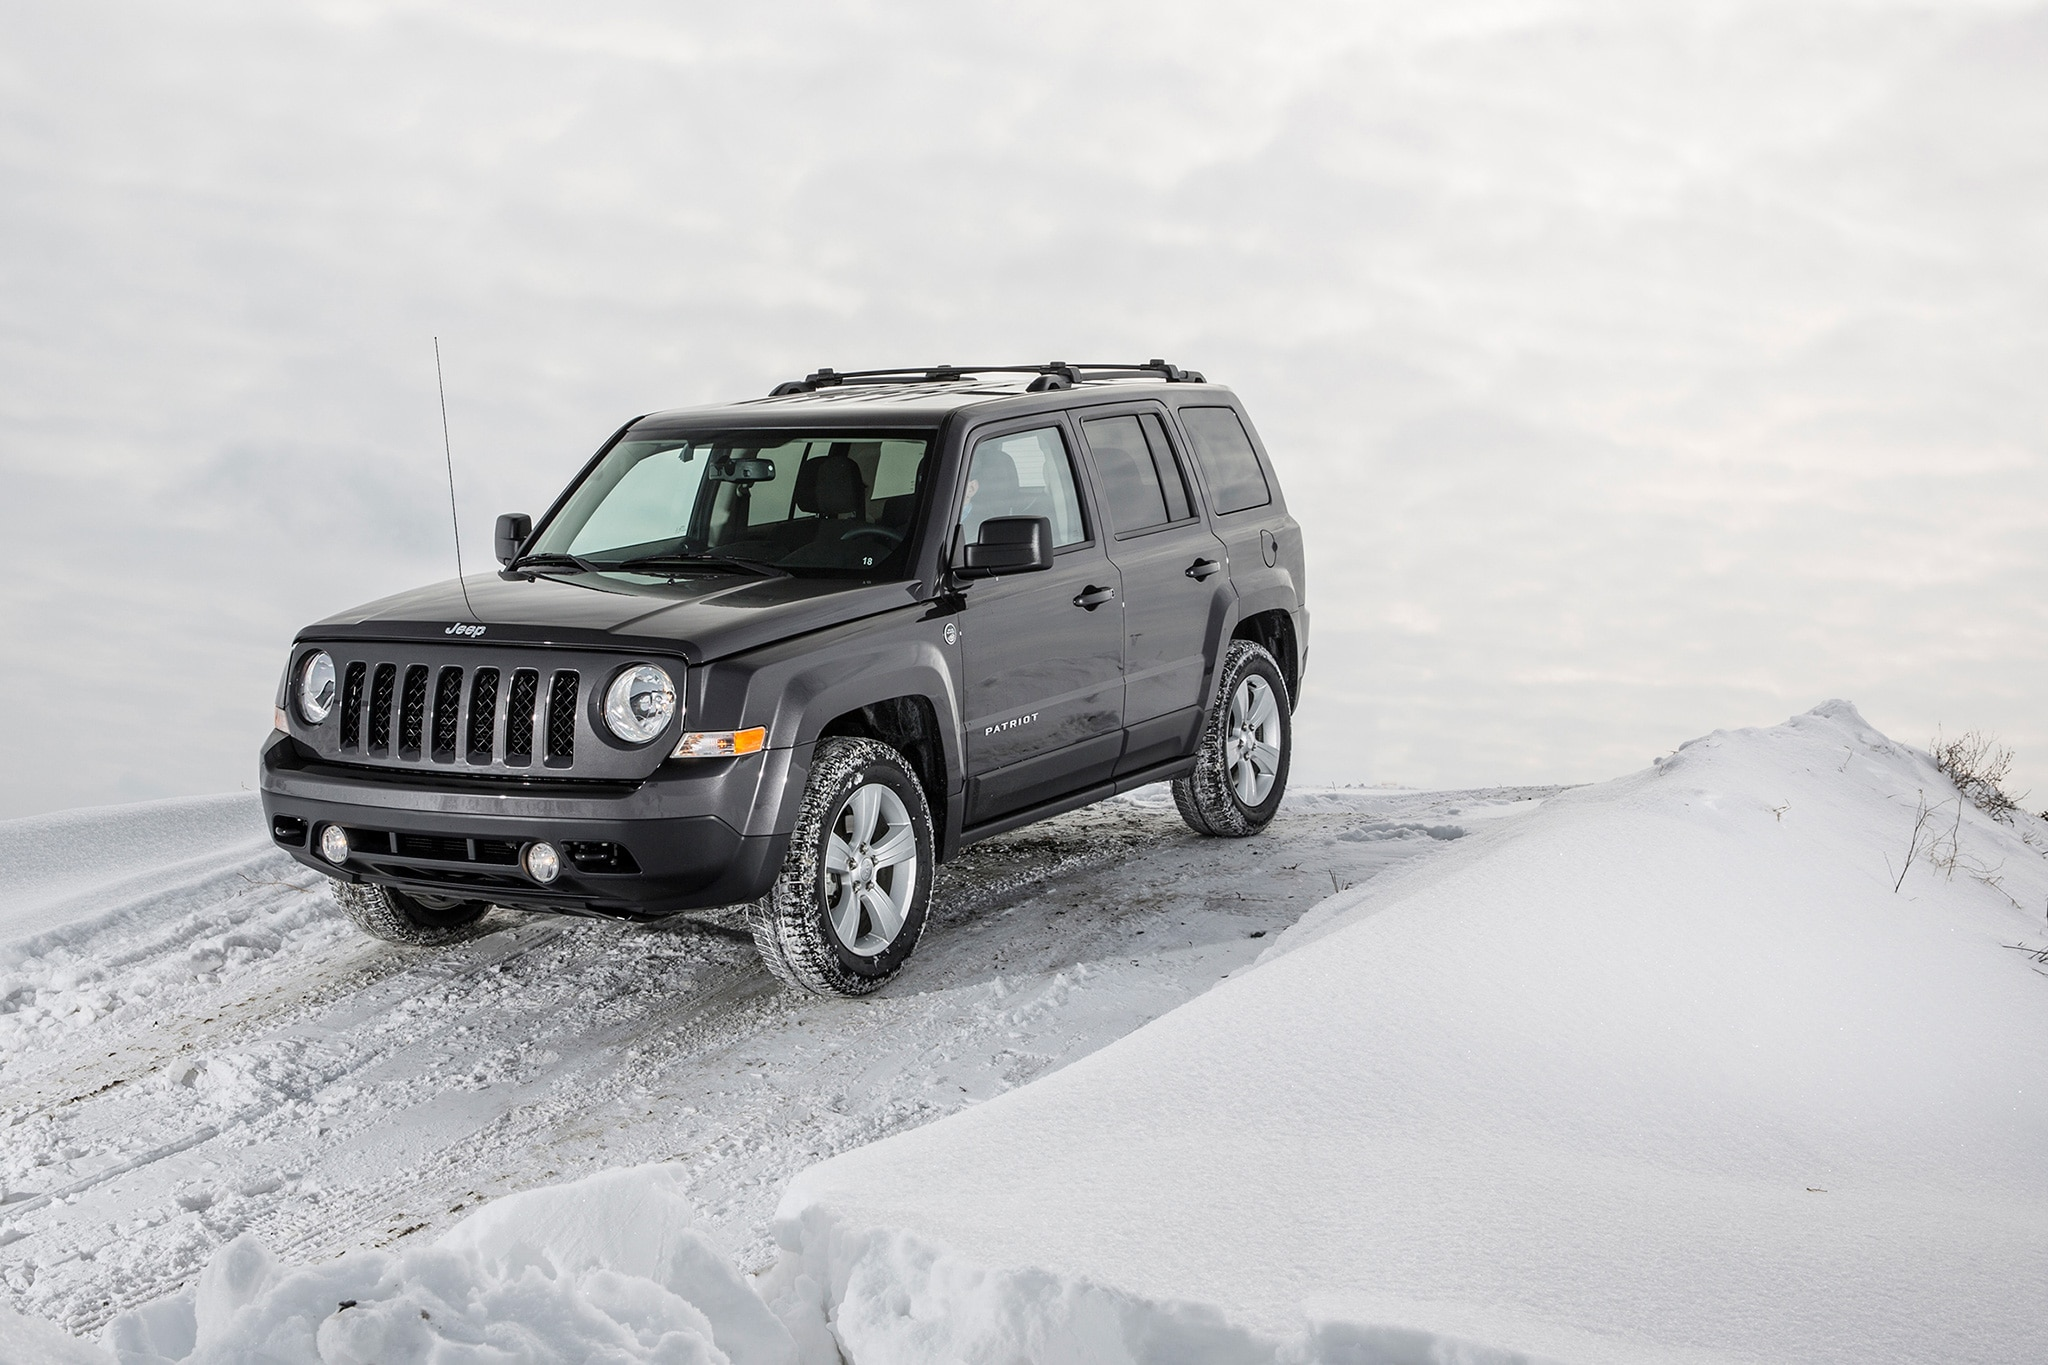 2017 jeep patriot recalls and problems - HD 1280×880